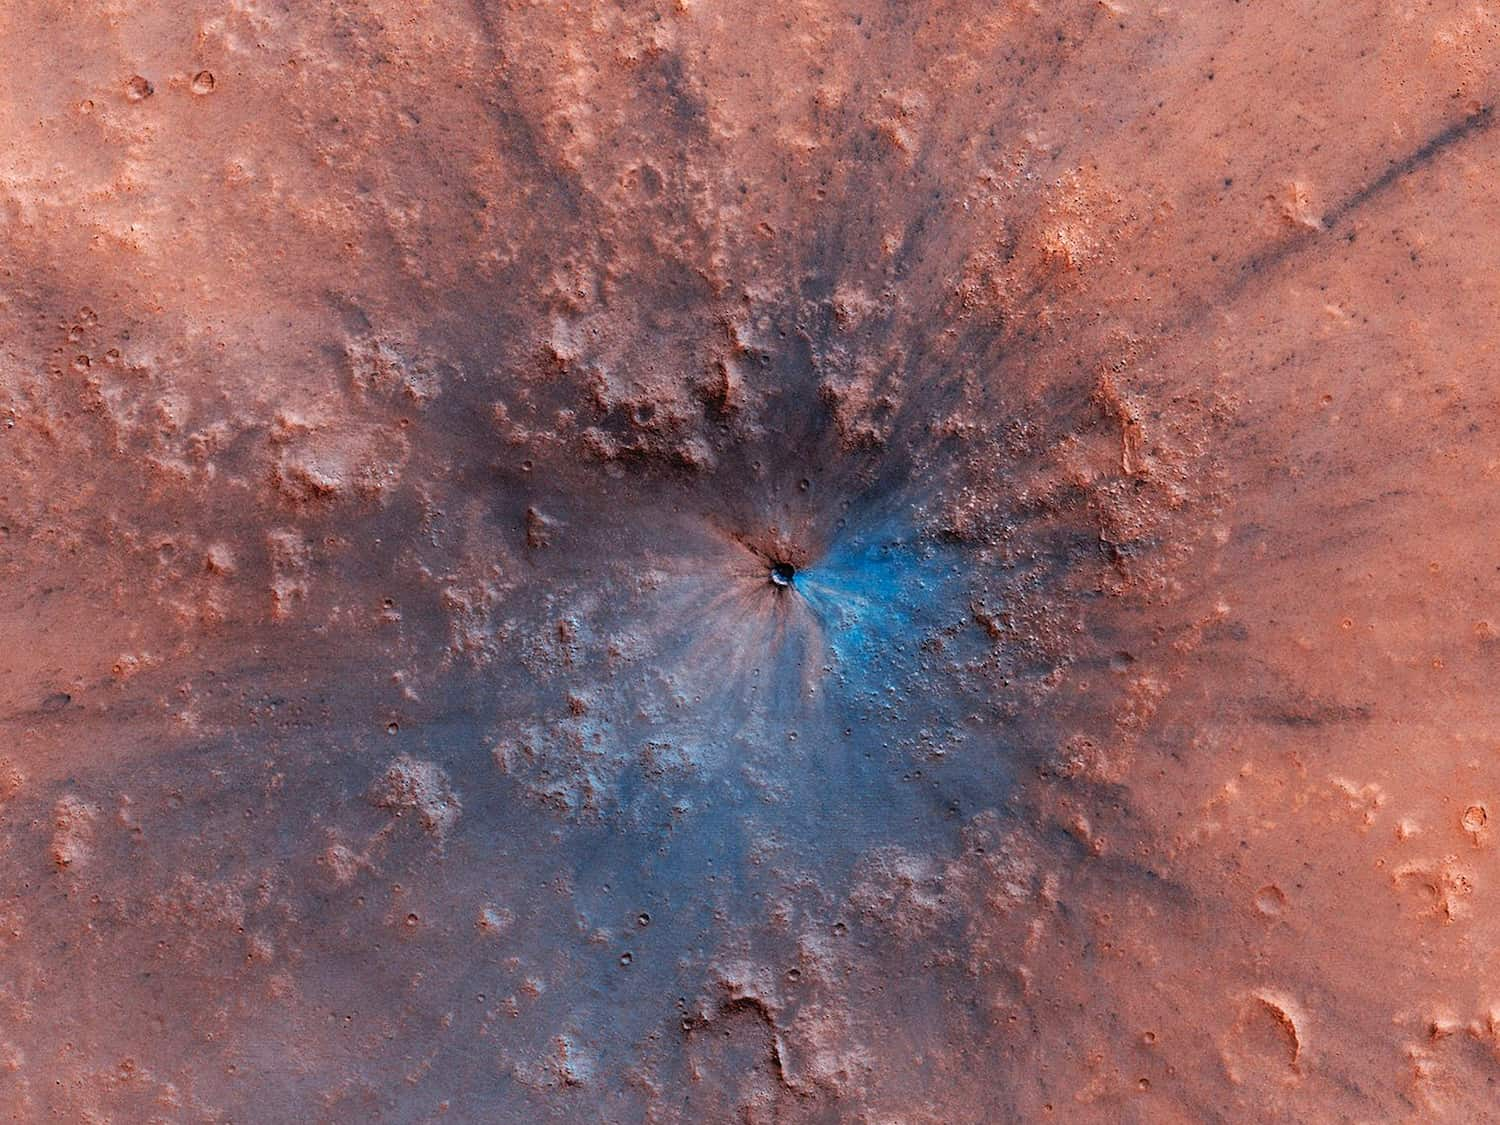 Mars : la superbe photo d'un cratère d'impact récent